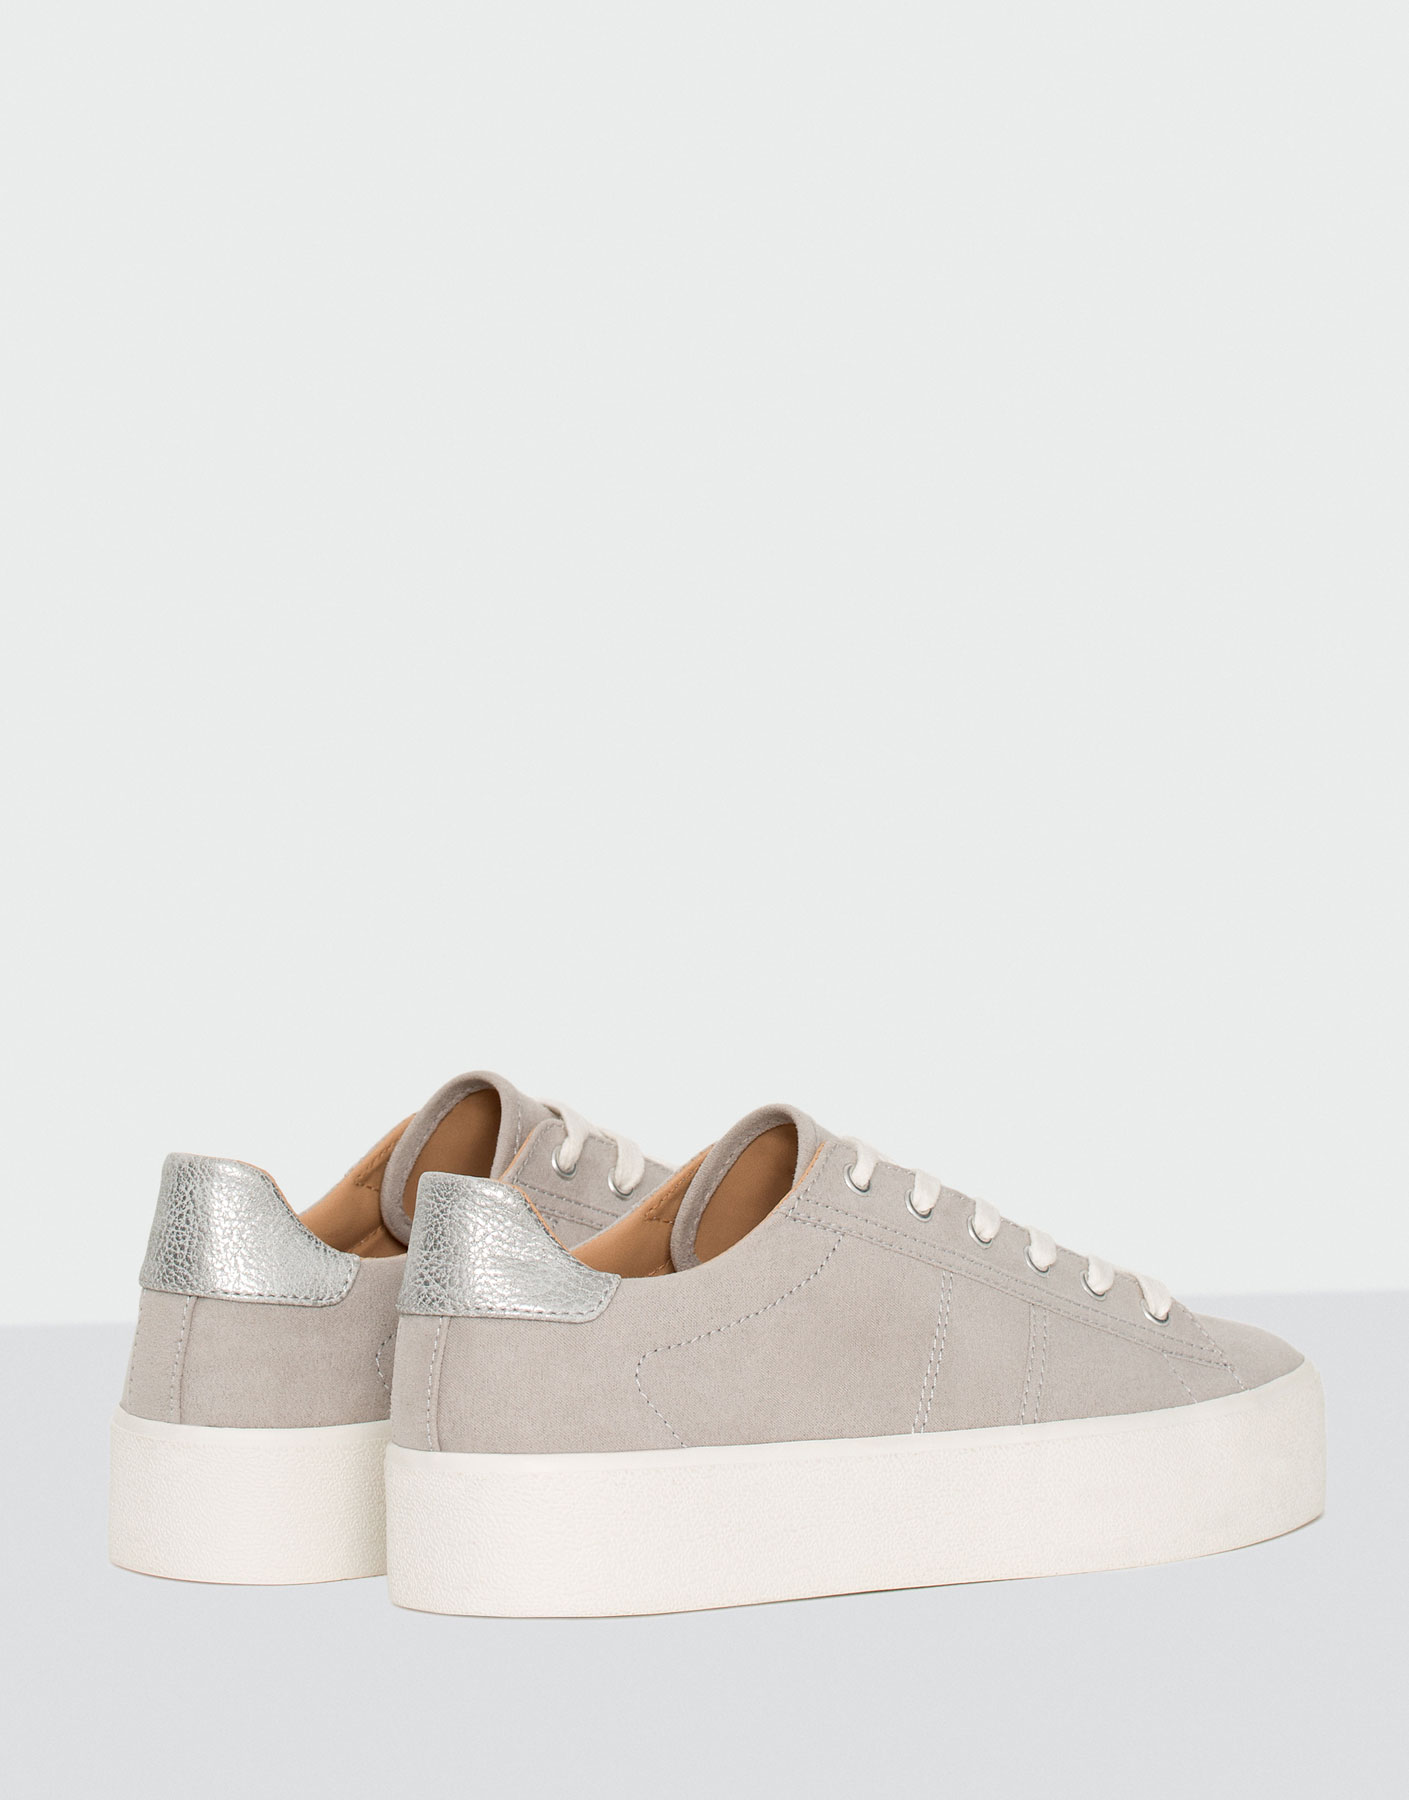 New college plimsolls